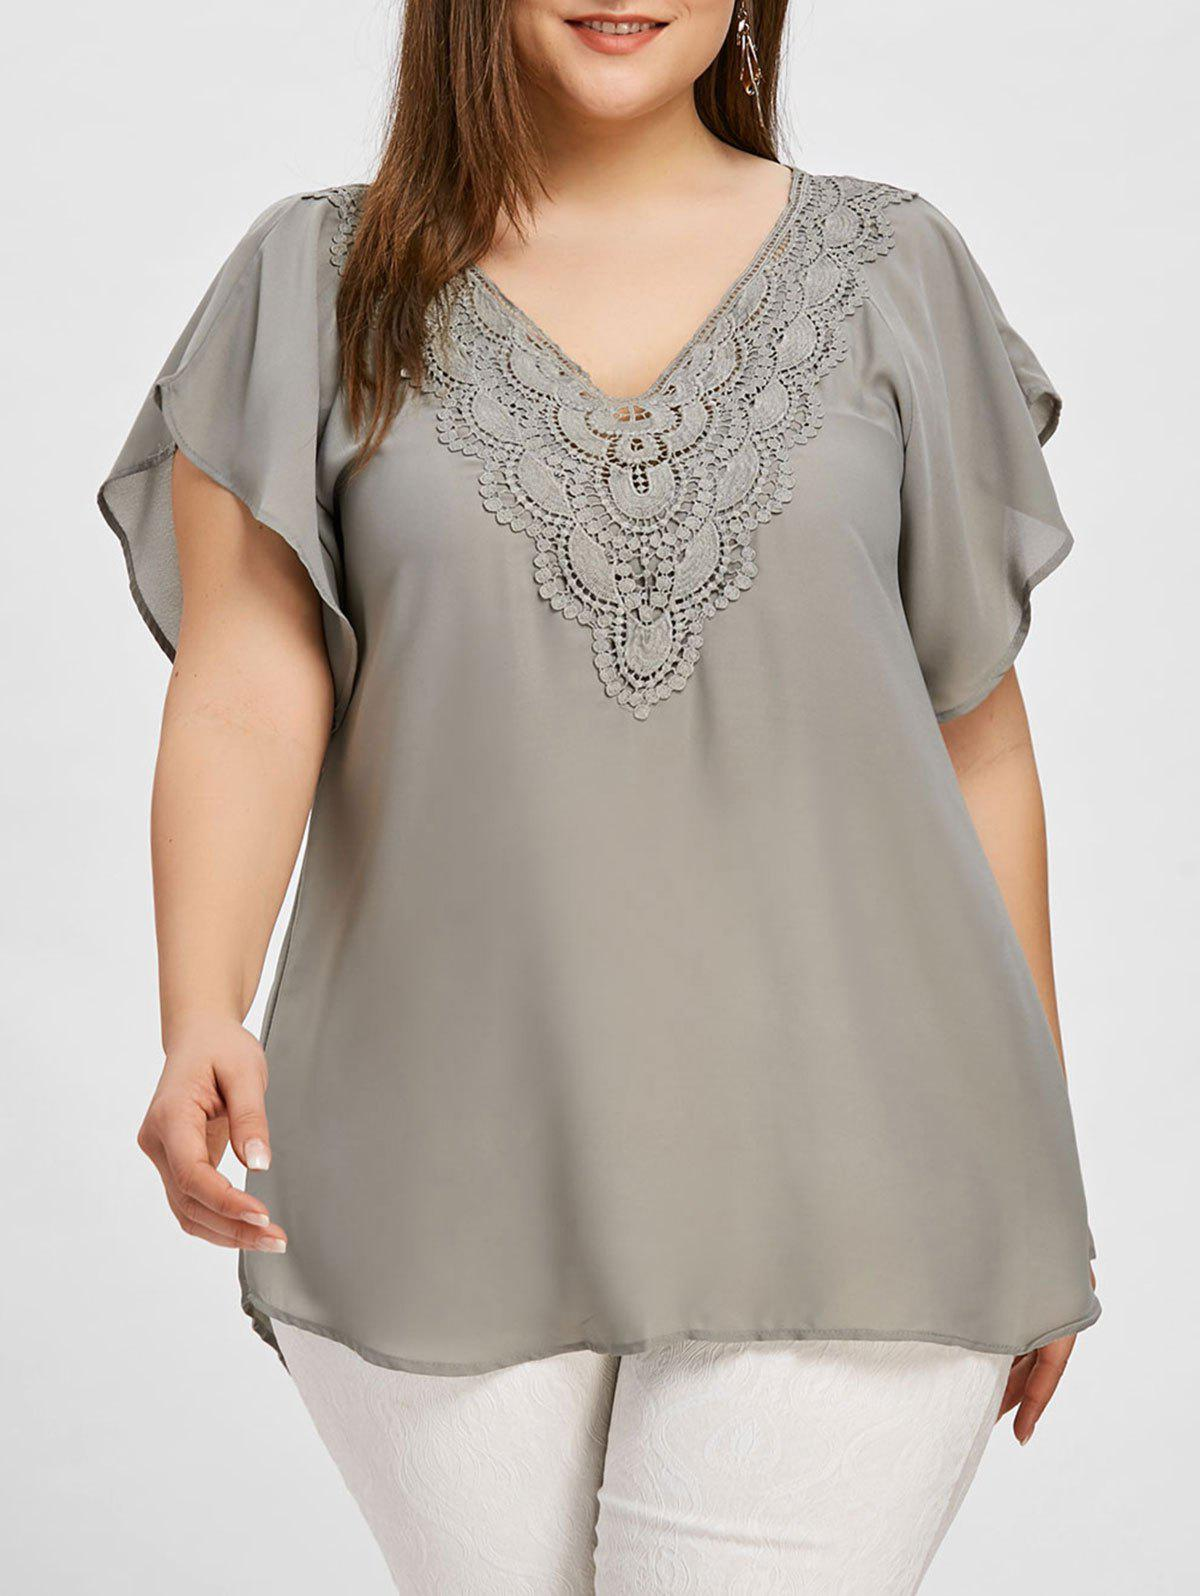 3e1e3e91250c0 2019 Plus Size Crochet High Low Blouse